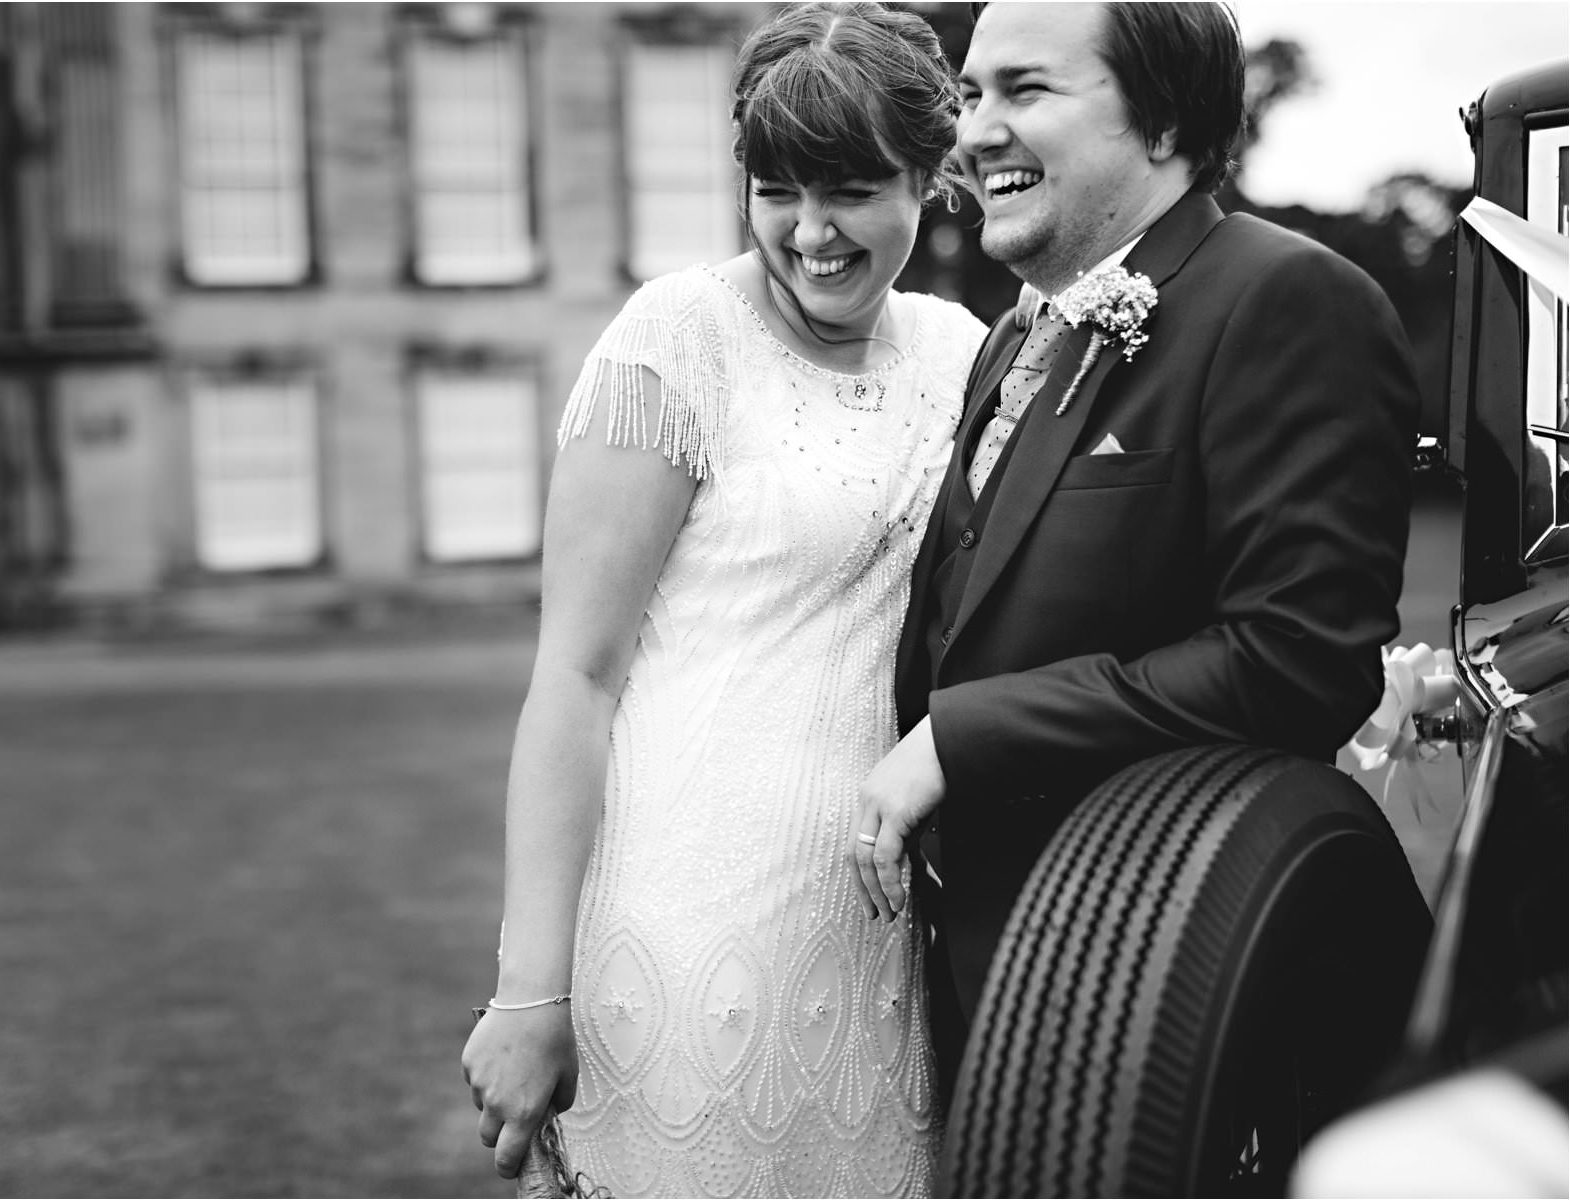 Real Bride Amy wears Fleur by Eliza Jane Howell - Bride & Groom by Car B & W Image